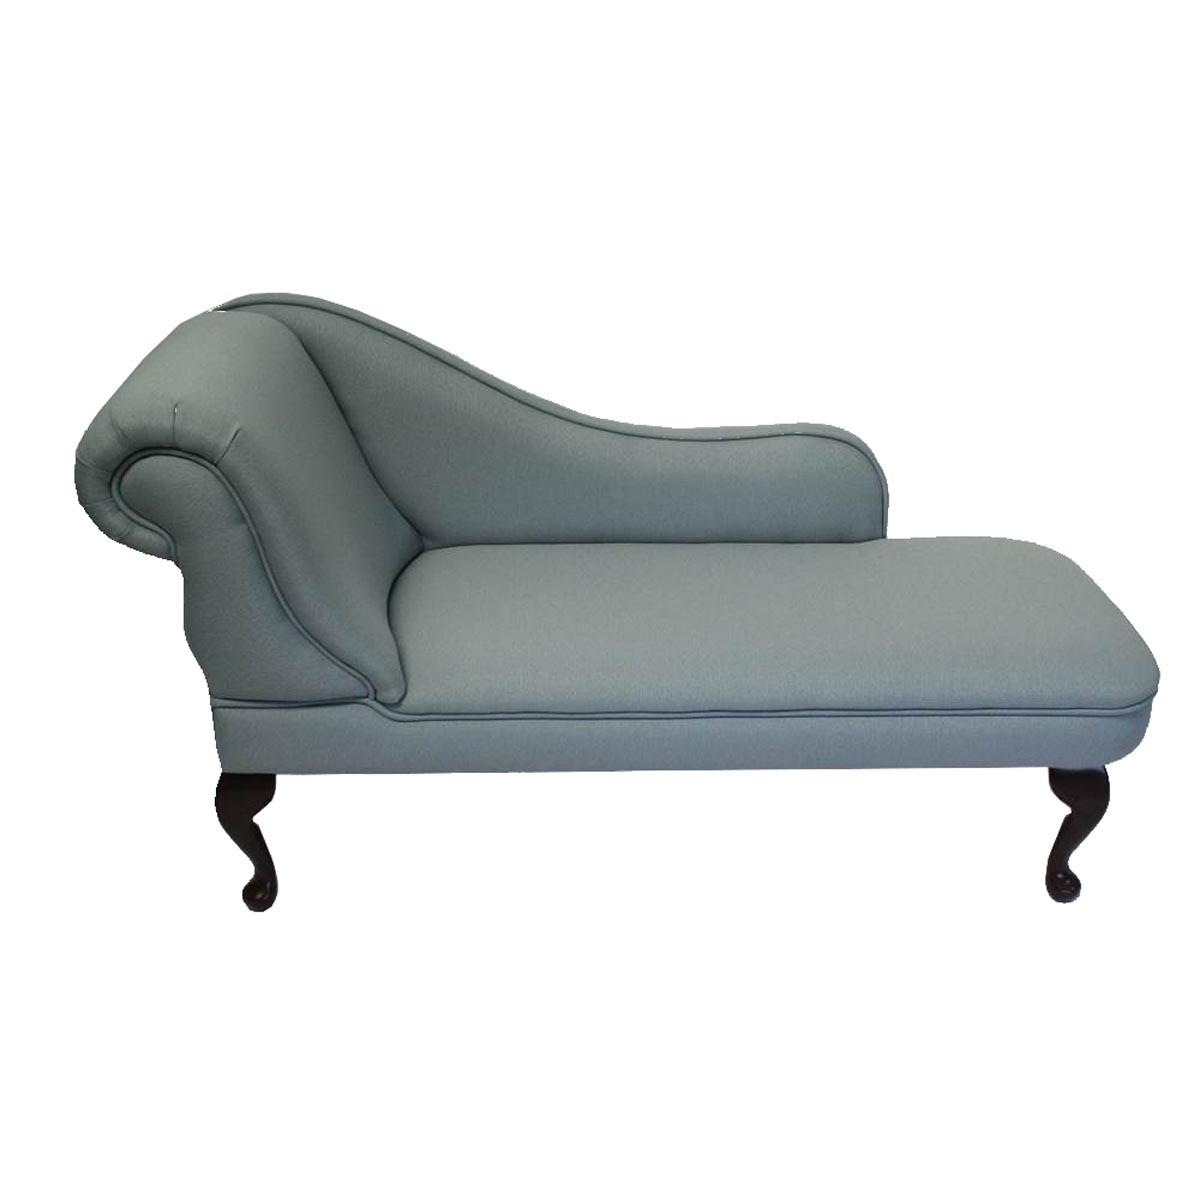 Twain long simply chaise for Chaise longue basculante